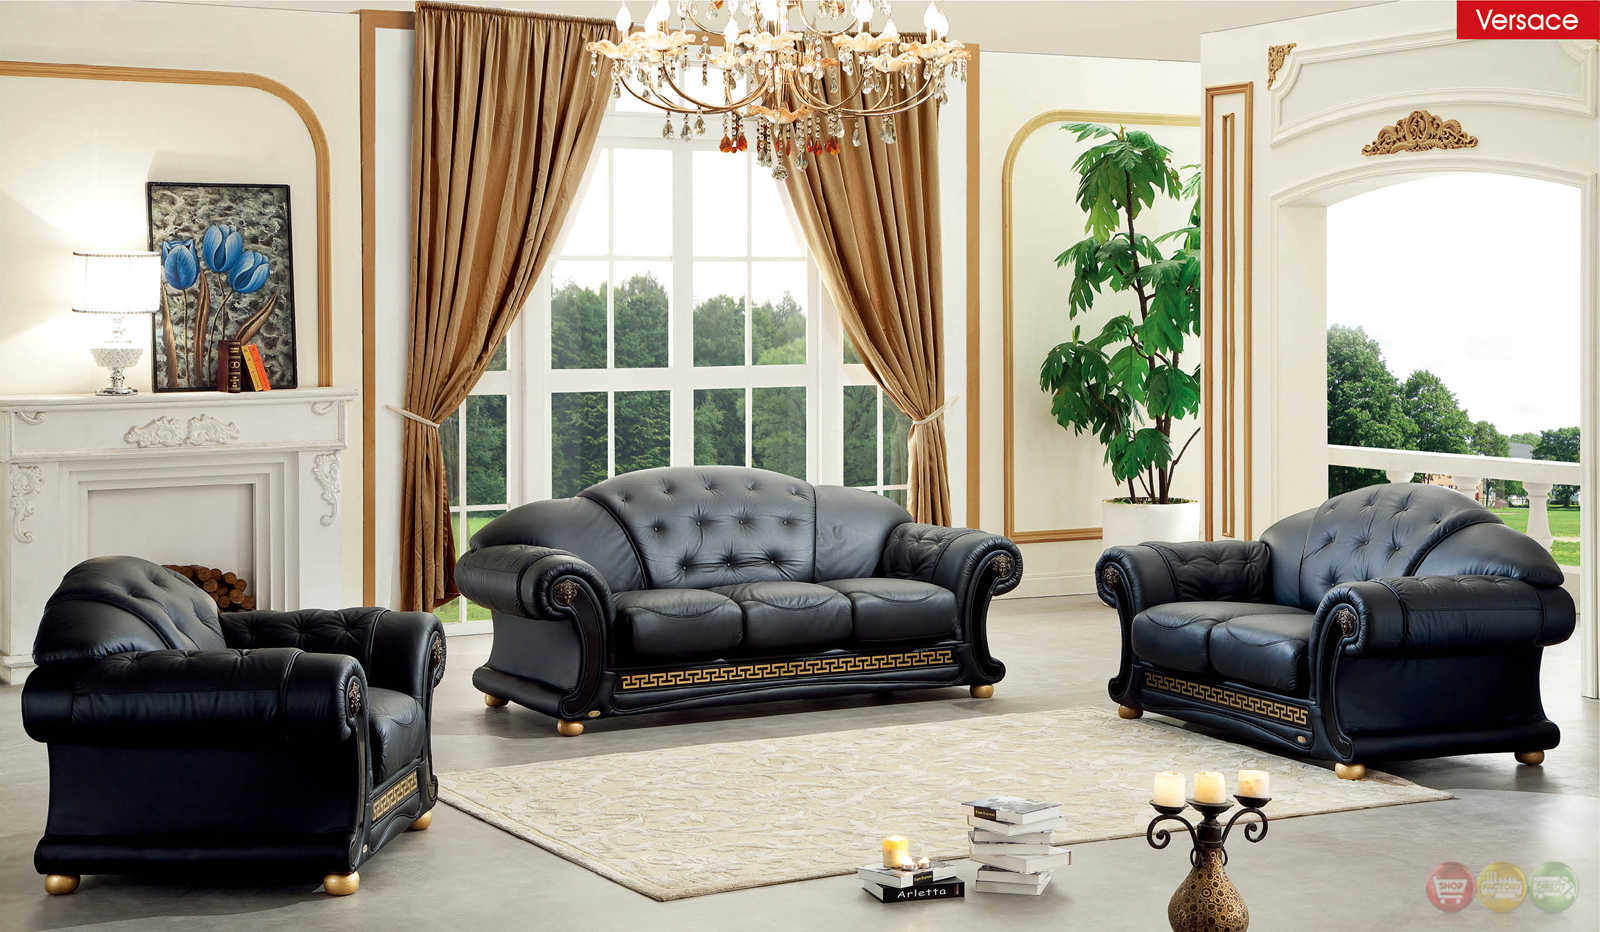 versace black genuine italian leather luxury sofa loveseat chair 3